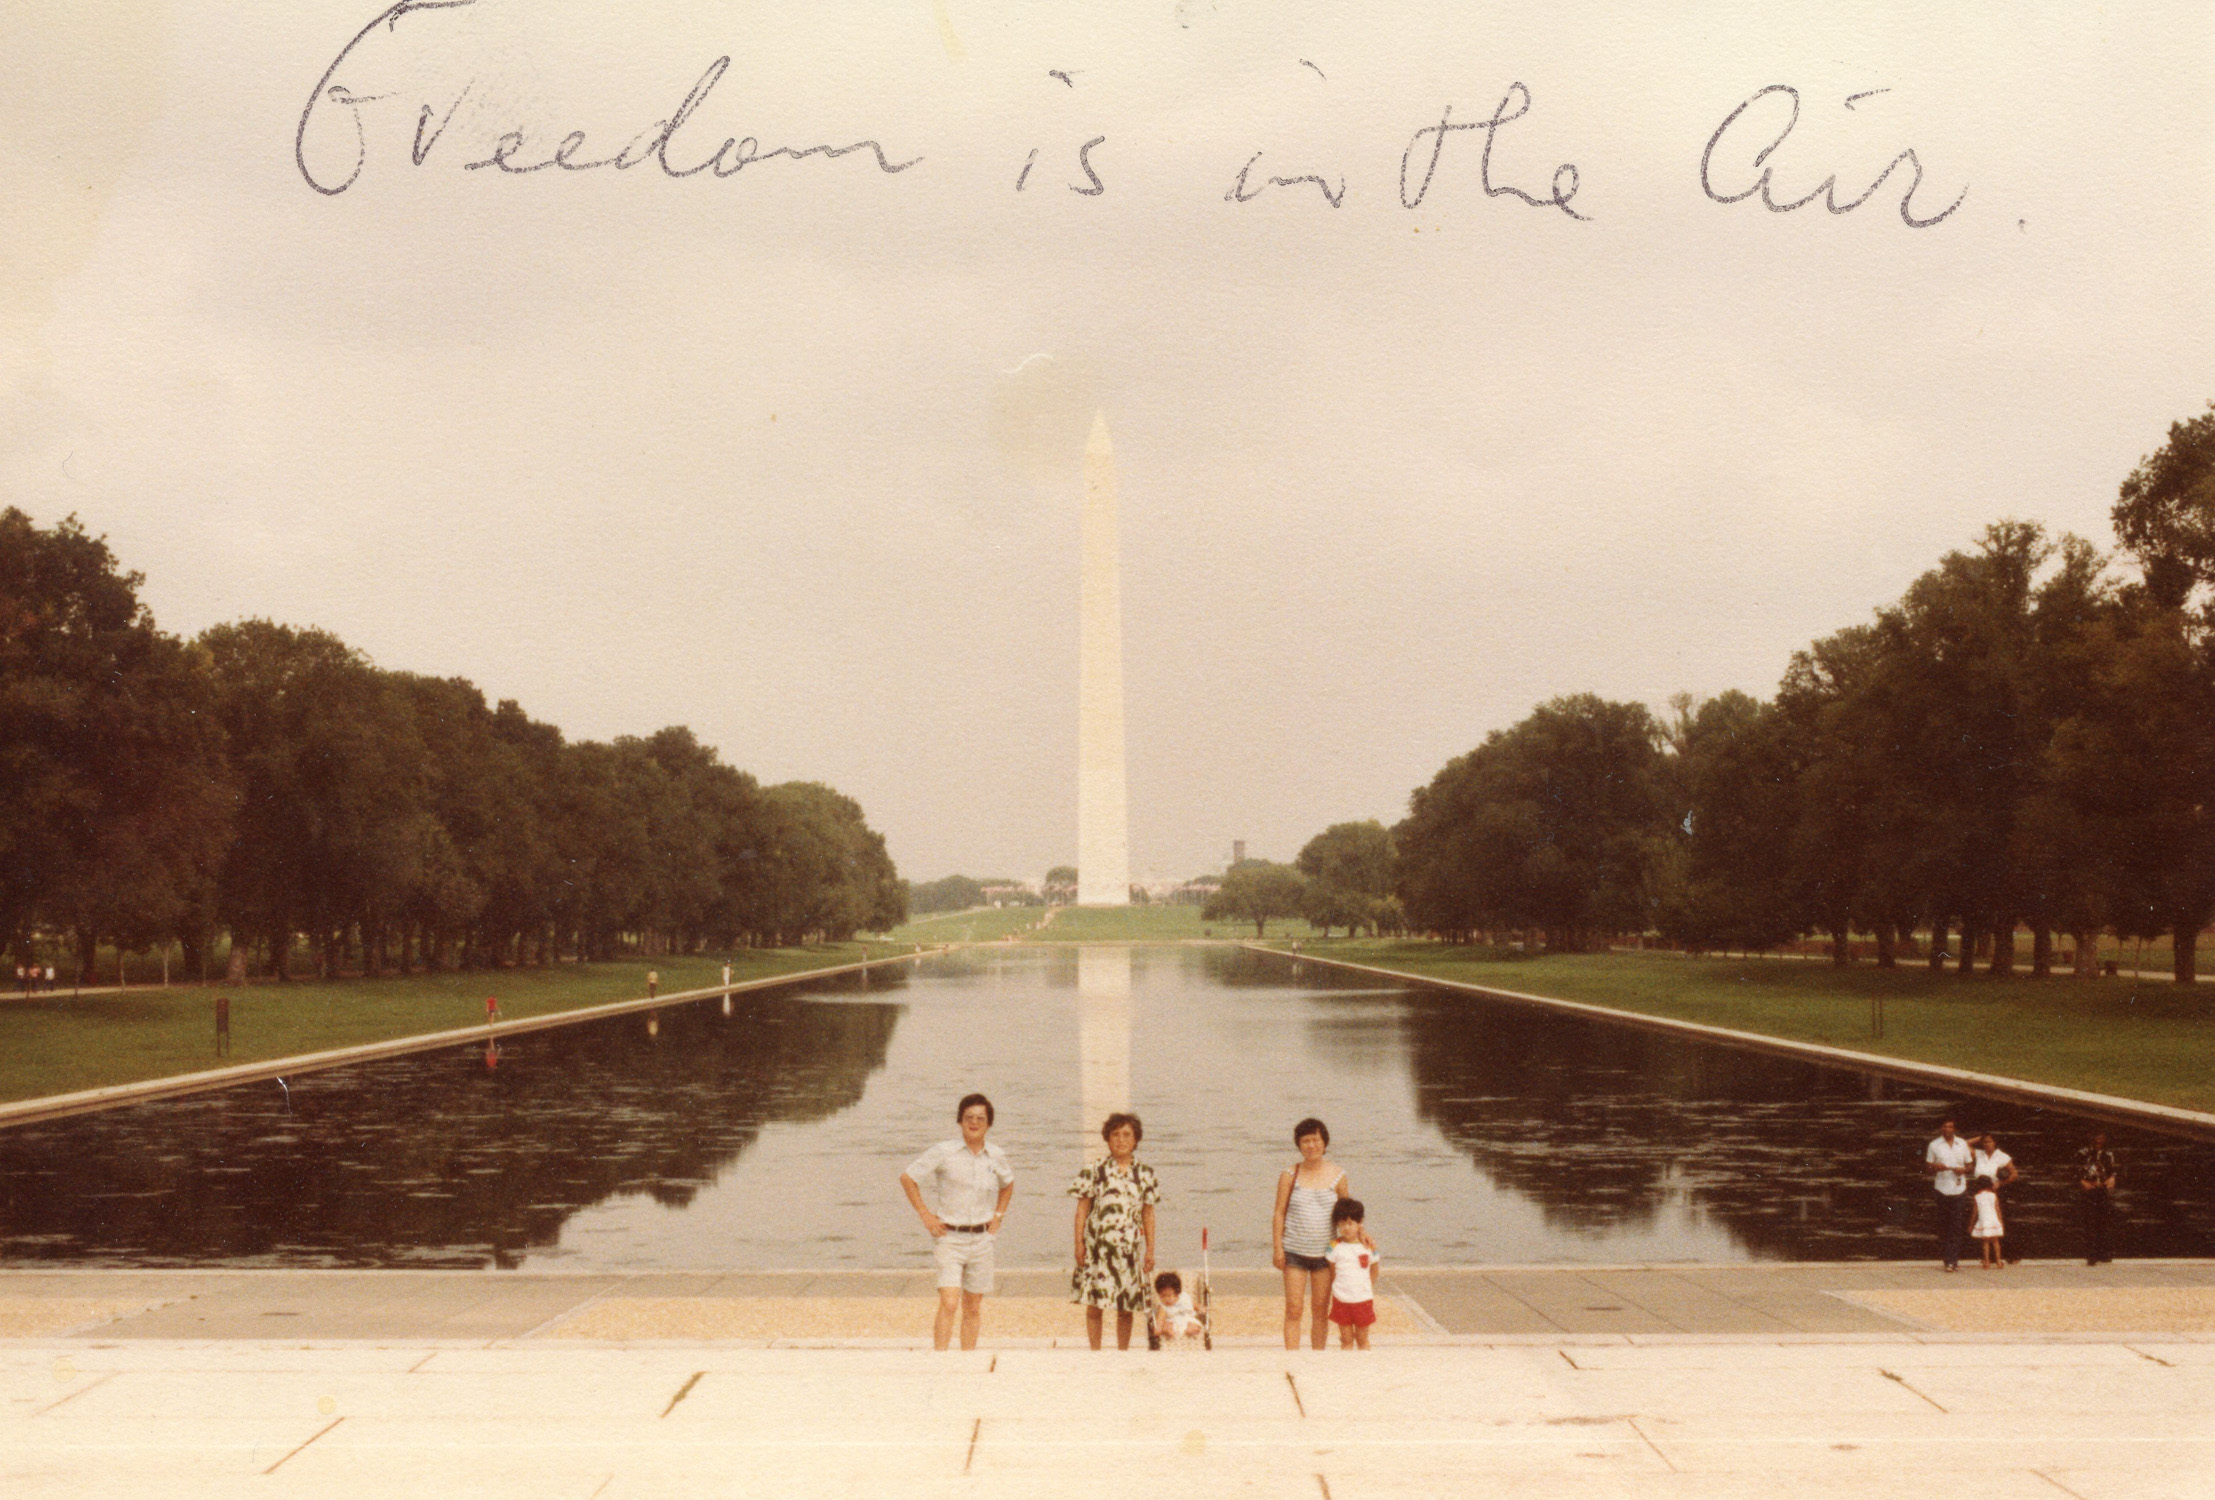 My family with my grandmother visiting Washington DC, 1981.